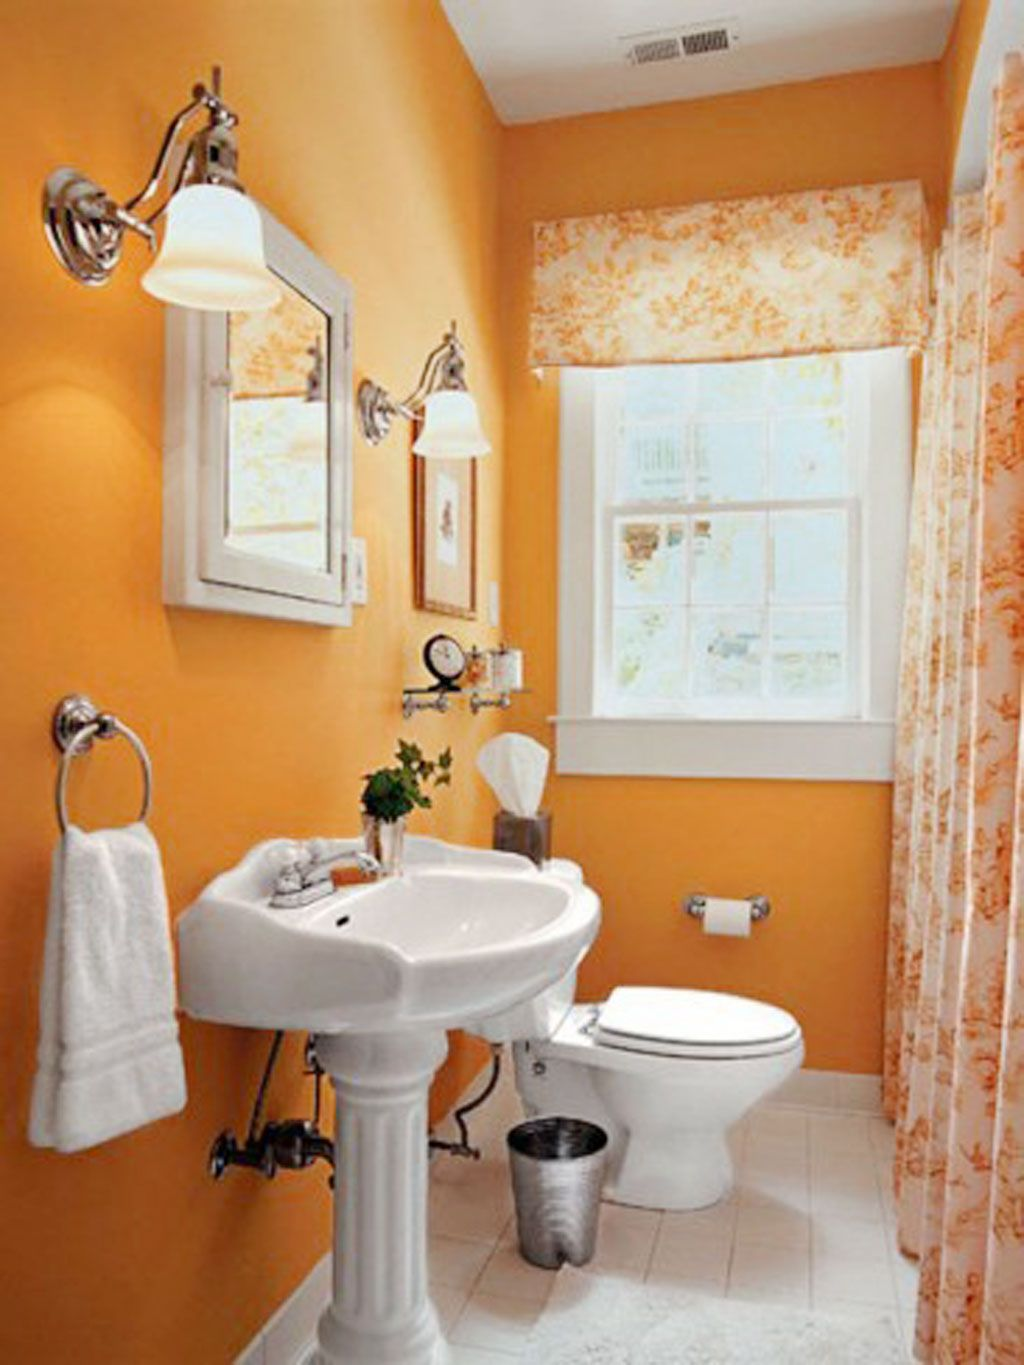 Colorful bathroom decoration - Orange Bathroom Decorating Ideas Interior Design The Color Orange Is A Bright Color With A Pleasant And Cheerful Character The Color Orange Makes The